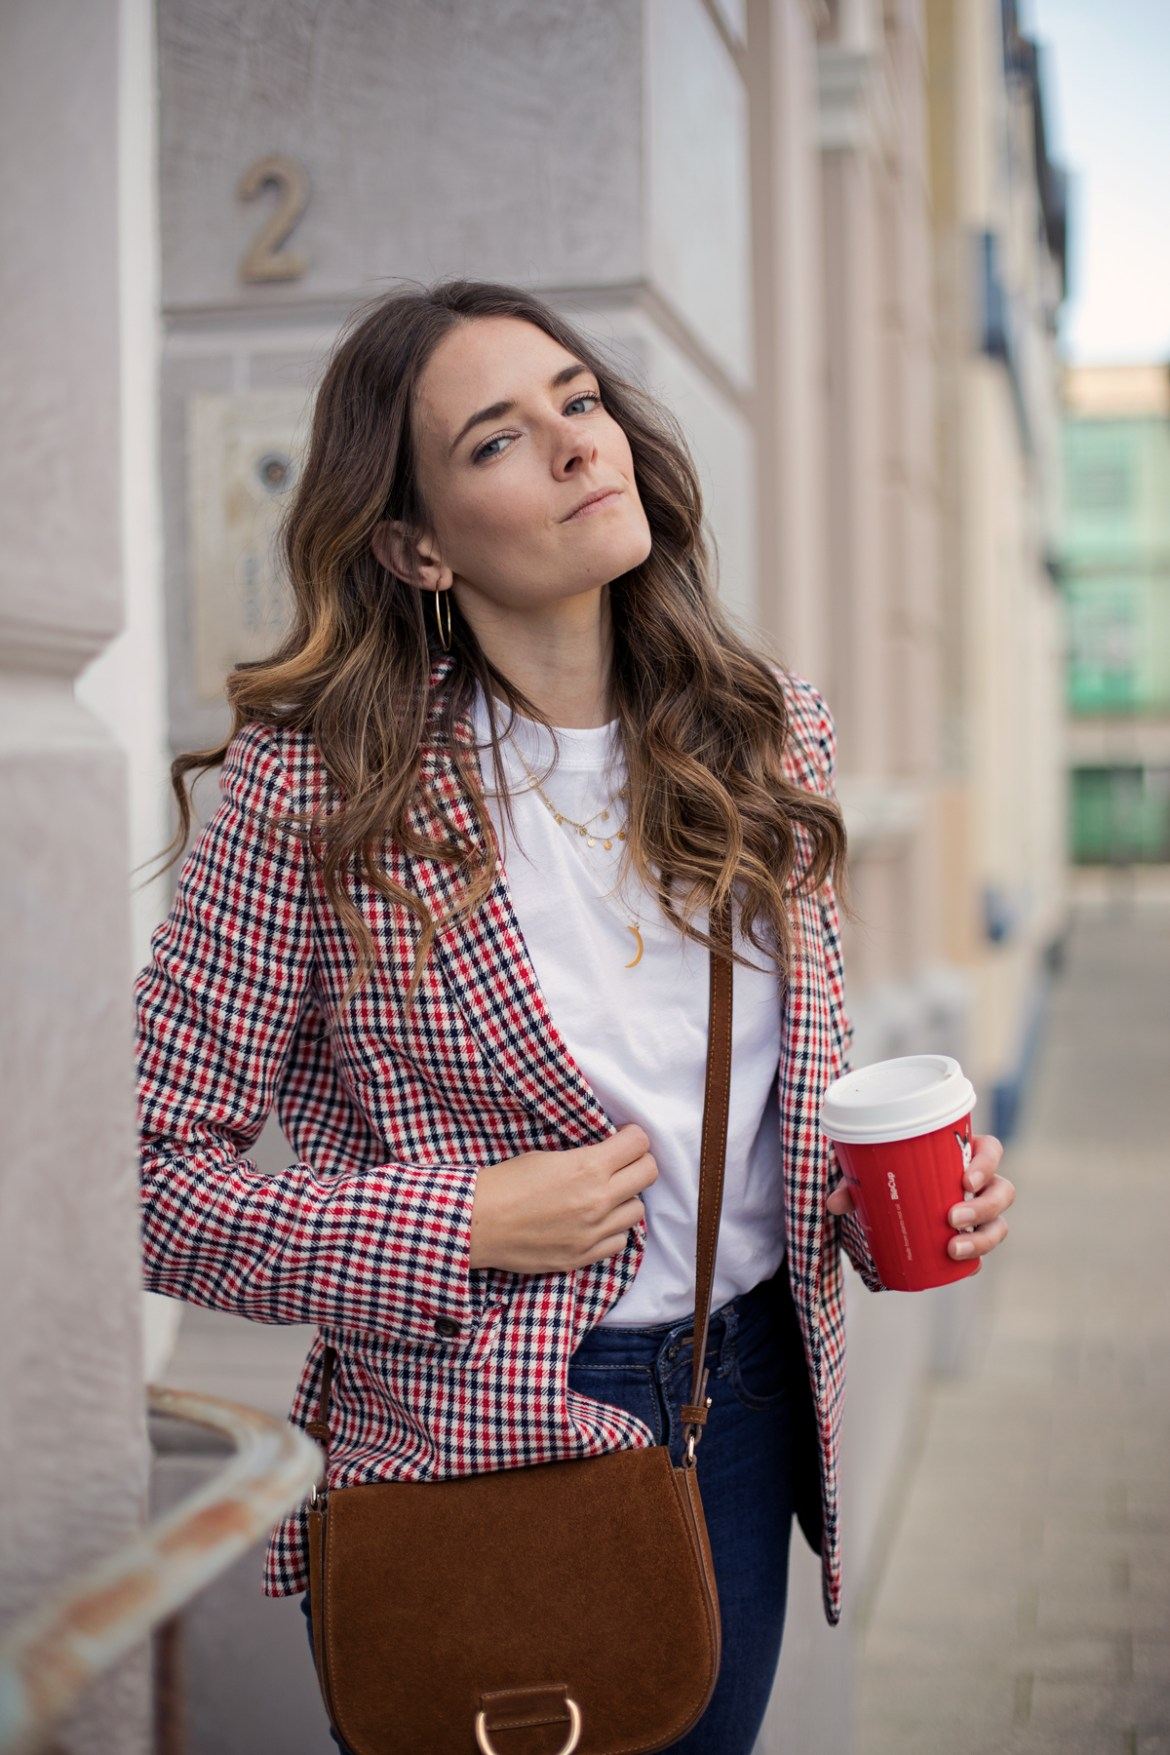 check blazer outfit idea the Boden Bramley check blazer worn by Australian fashion blogger Jenelle Witty of Inspiring Wit with jeans and white t-shirt and tan suede bag by Little Liffner